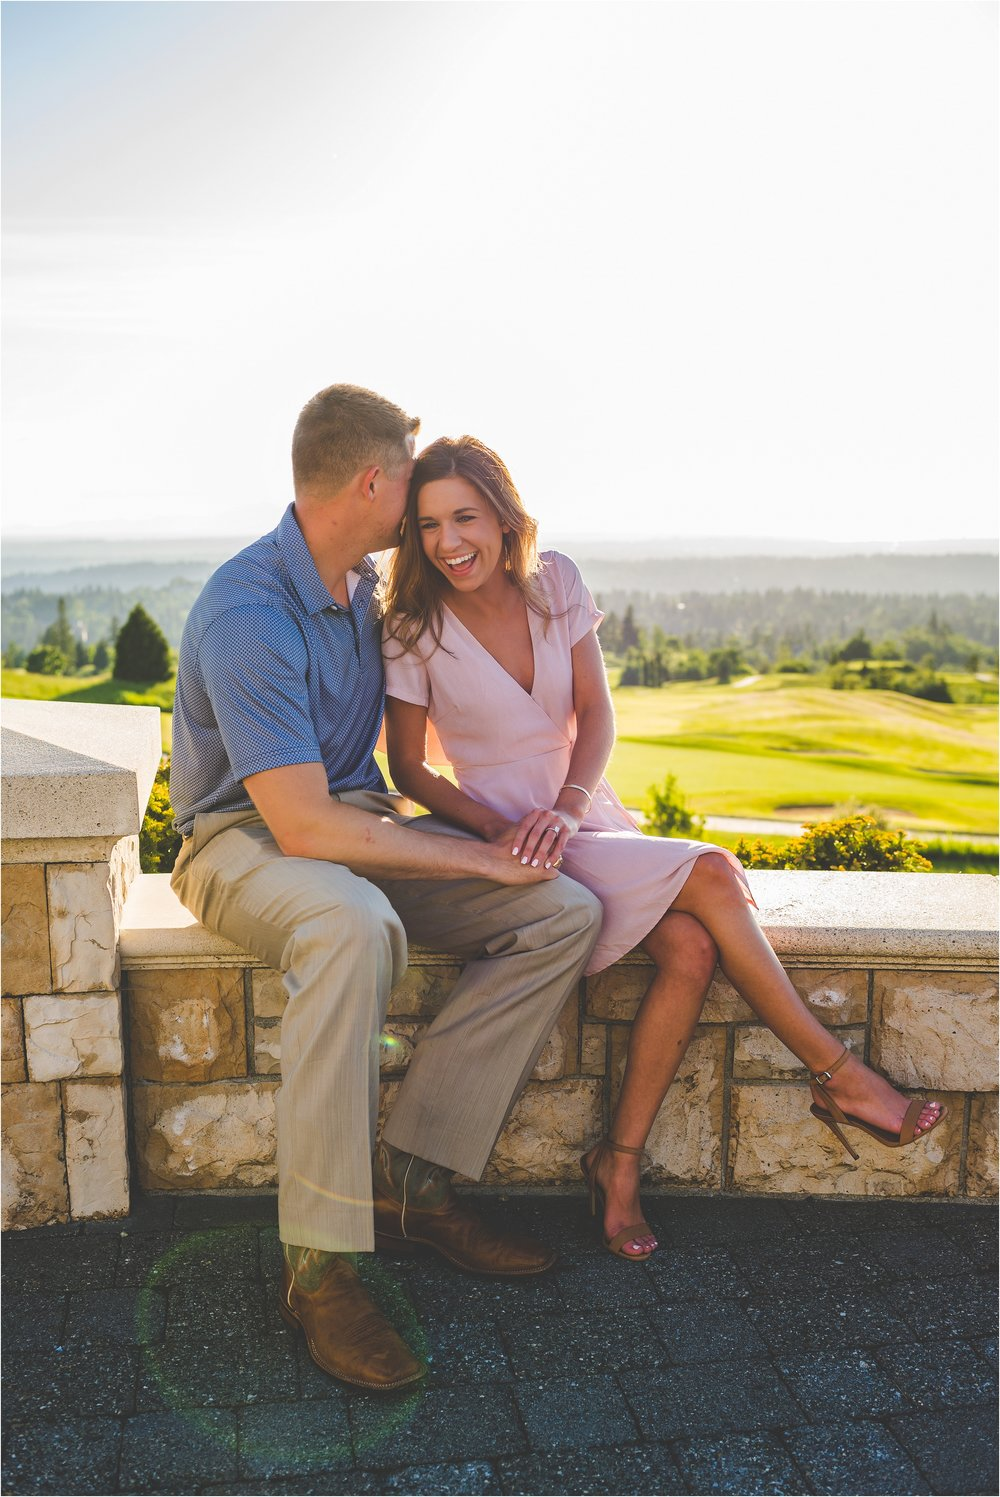 newcastle-golf-club-proposal-jannicka-mayte-seattle-washington-engagement-wedding-photographer_0025.jpg